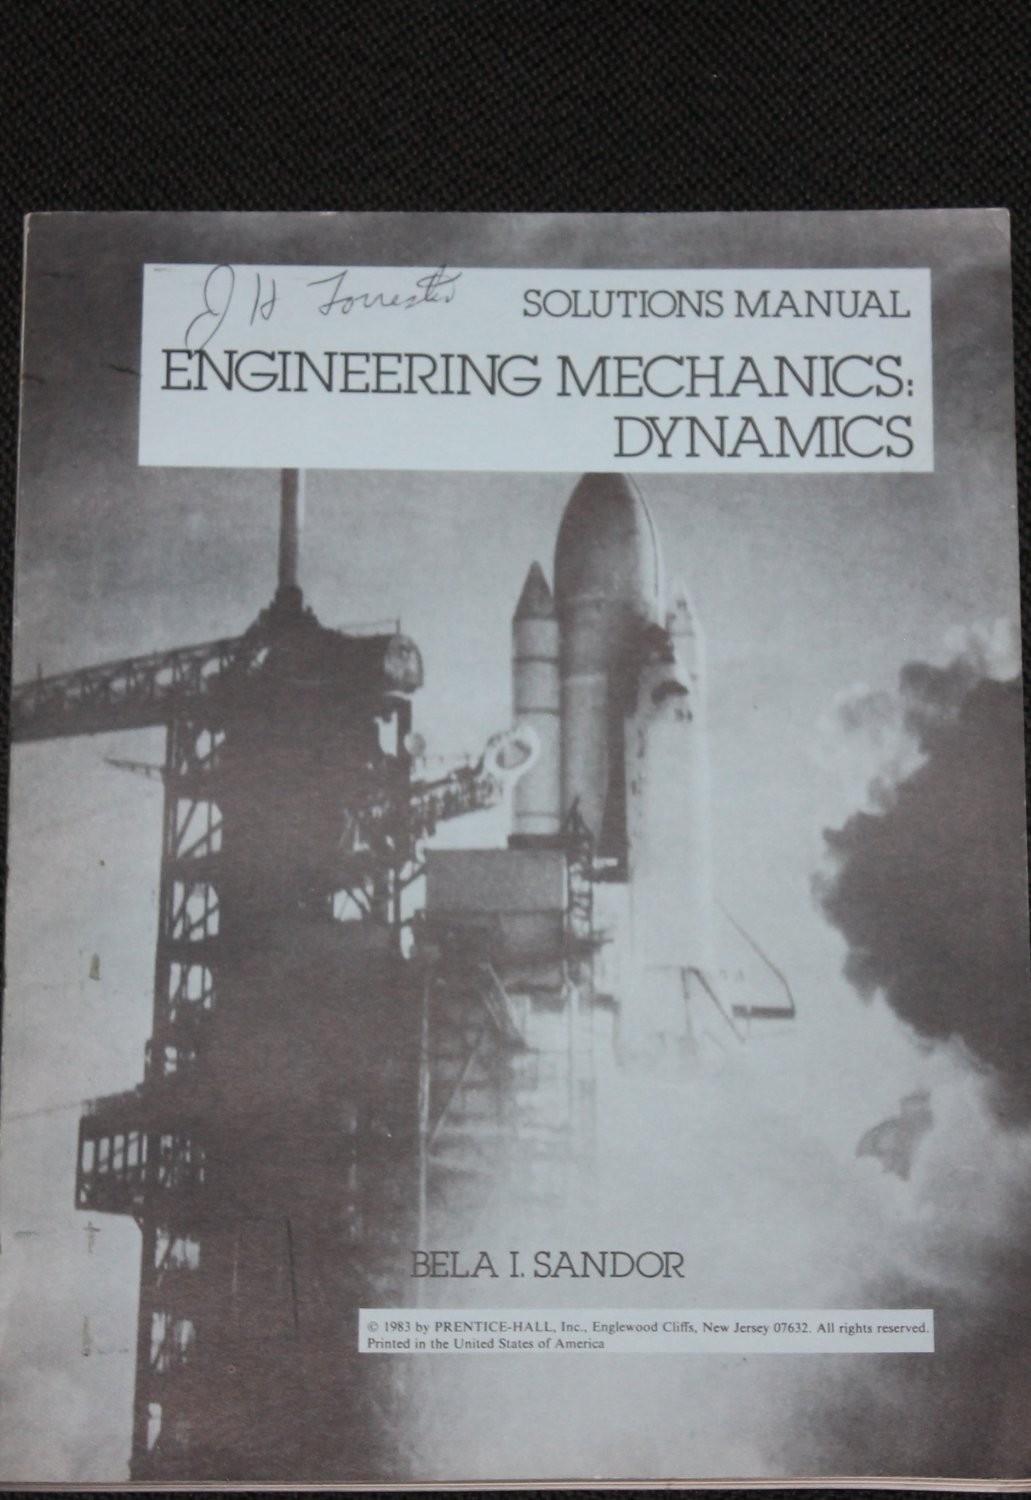 Engineering Mechanics Dynamics science scientific math mathematical technology solutions manual book